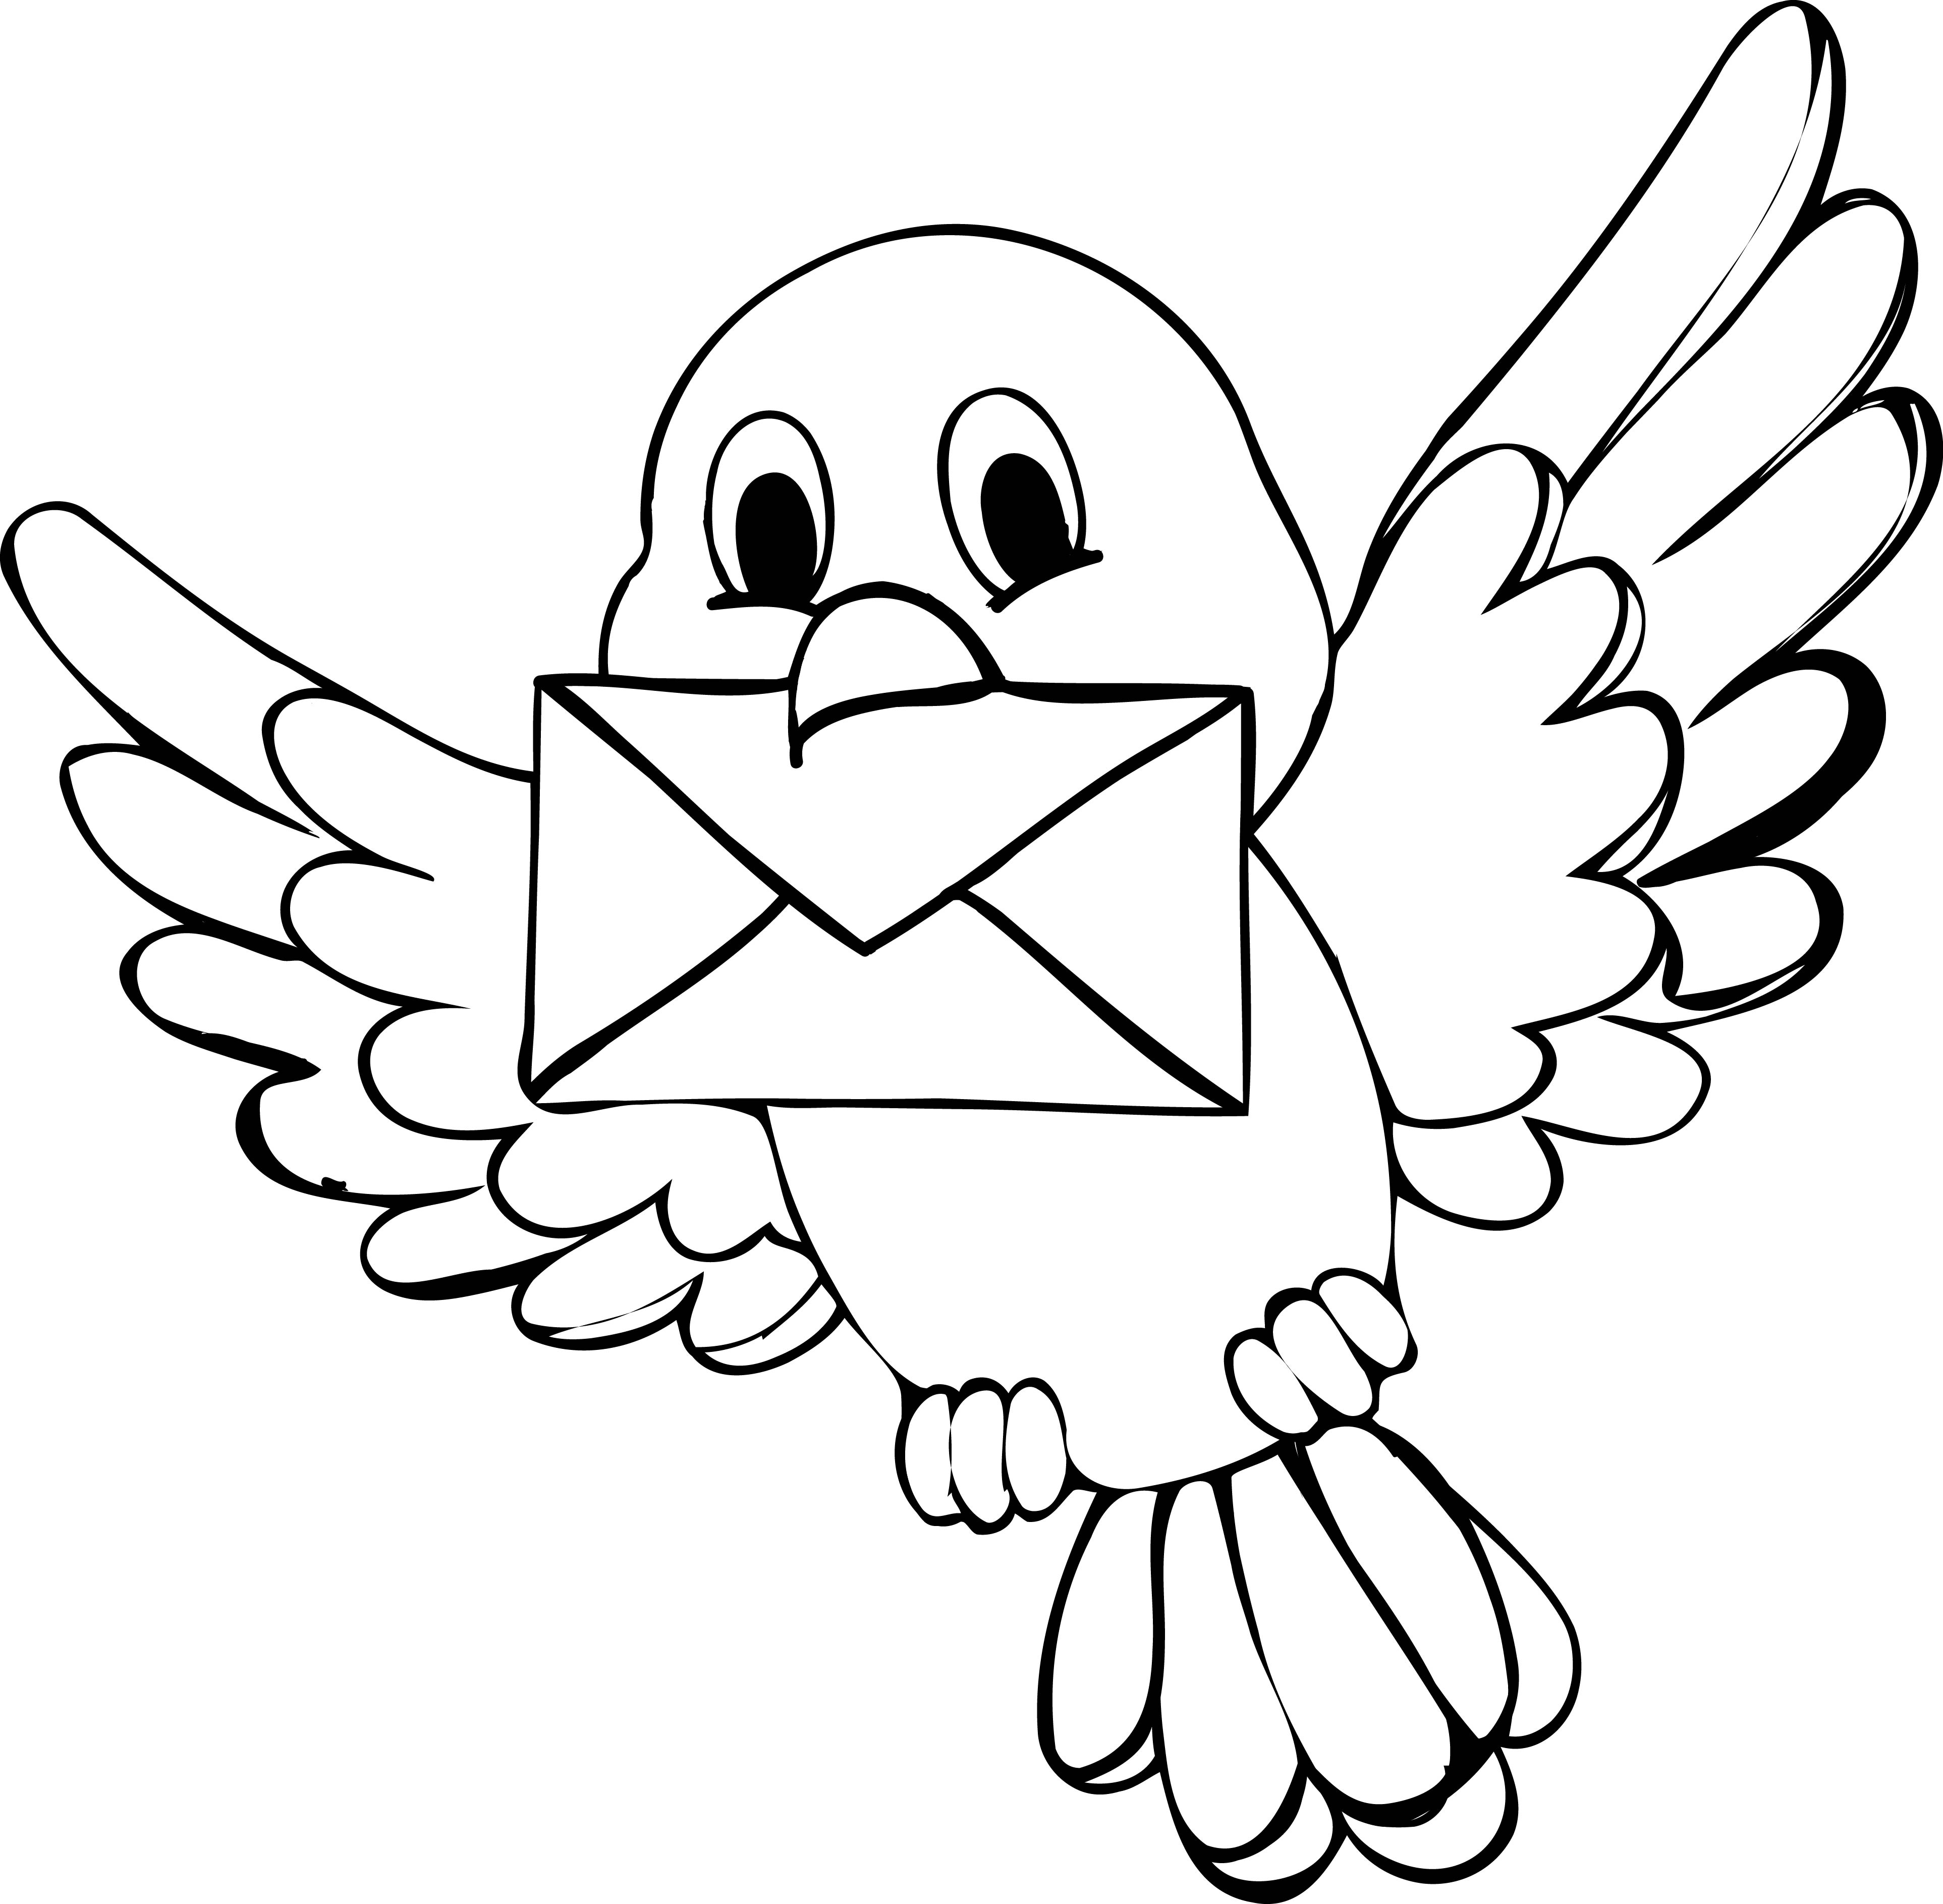 bird printable coloring pages free printable coloring pages birds 2015 coloring bird pages printable